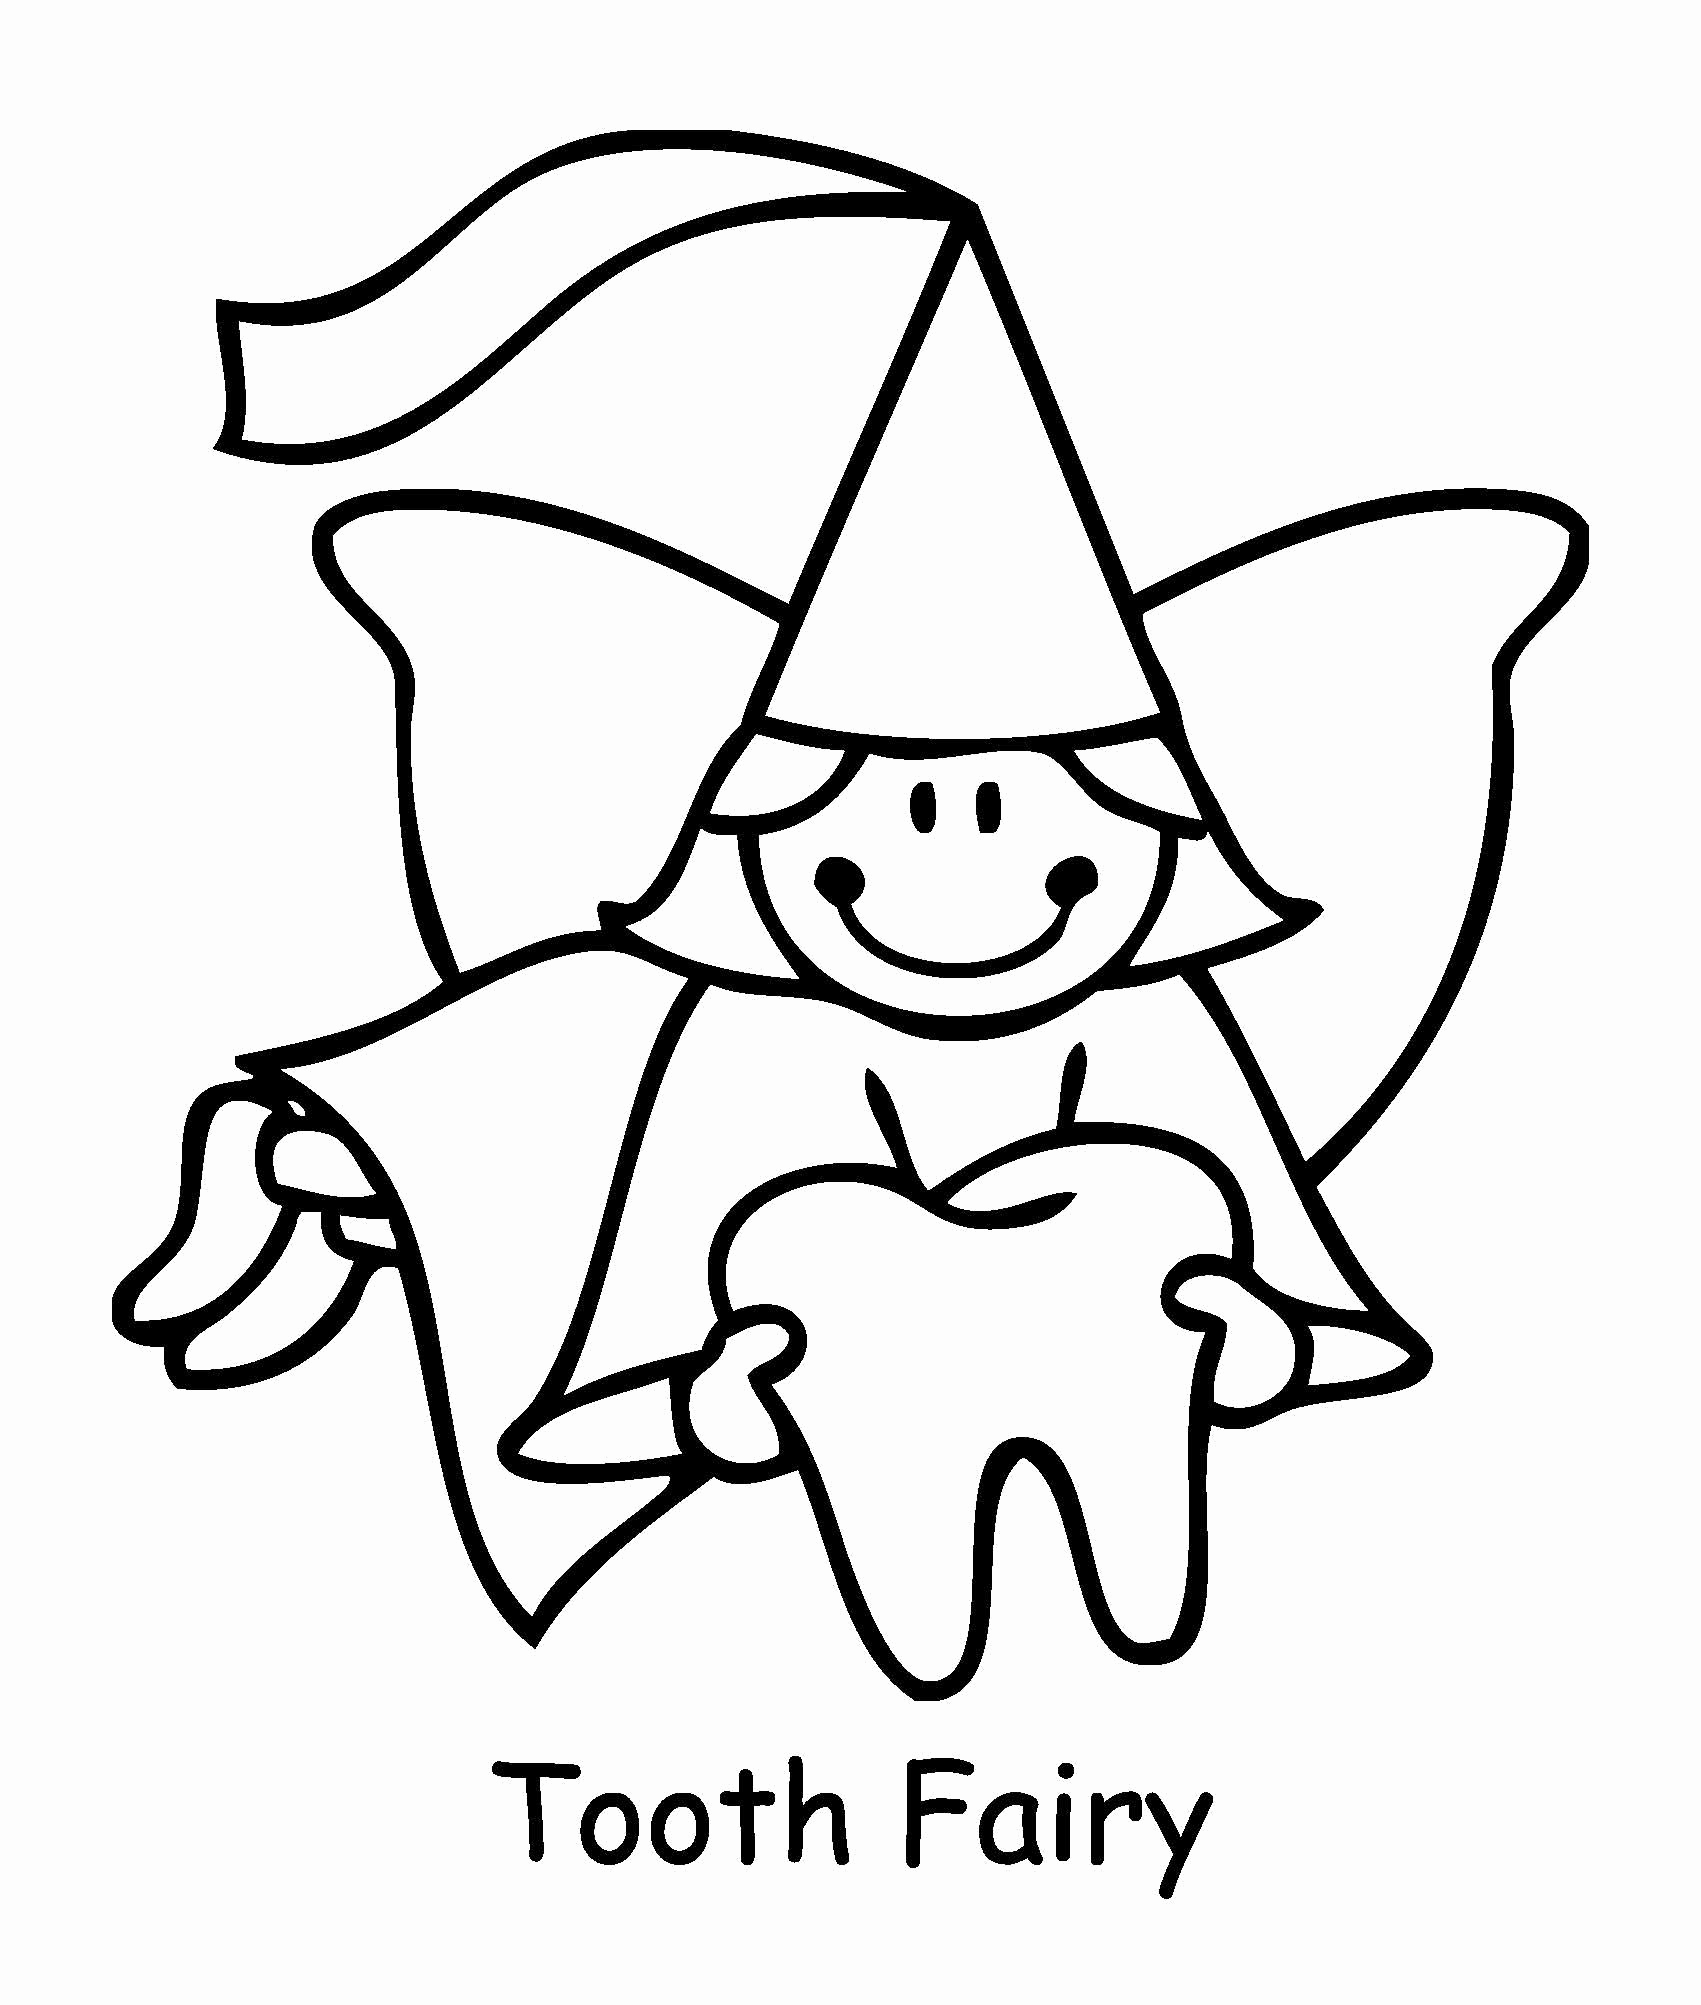 Dental Coloring Pages Collection Teeth Coloring Pages Coloring to Print Of Free Easy Printable Coloring Pages About Teeth Collection